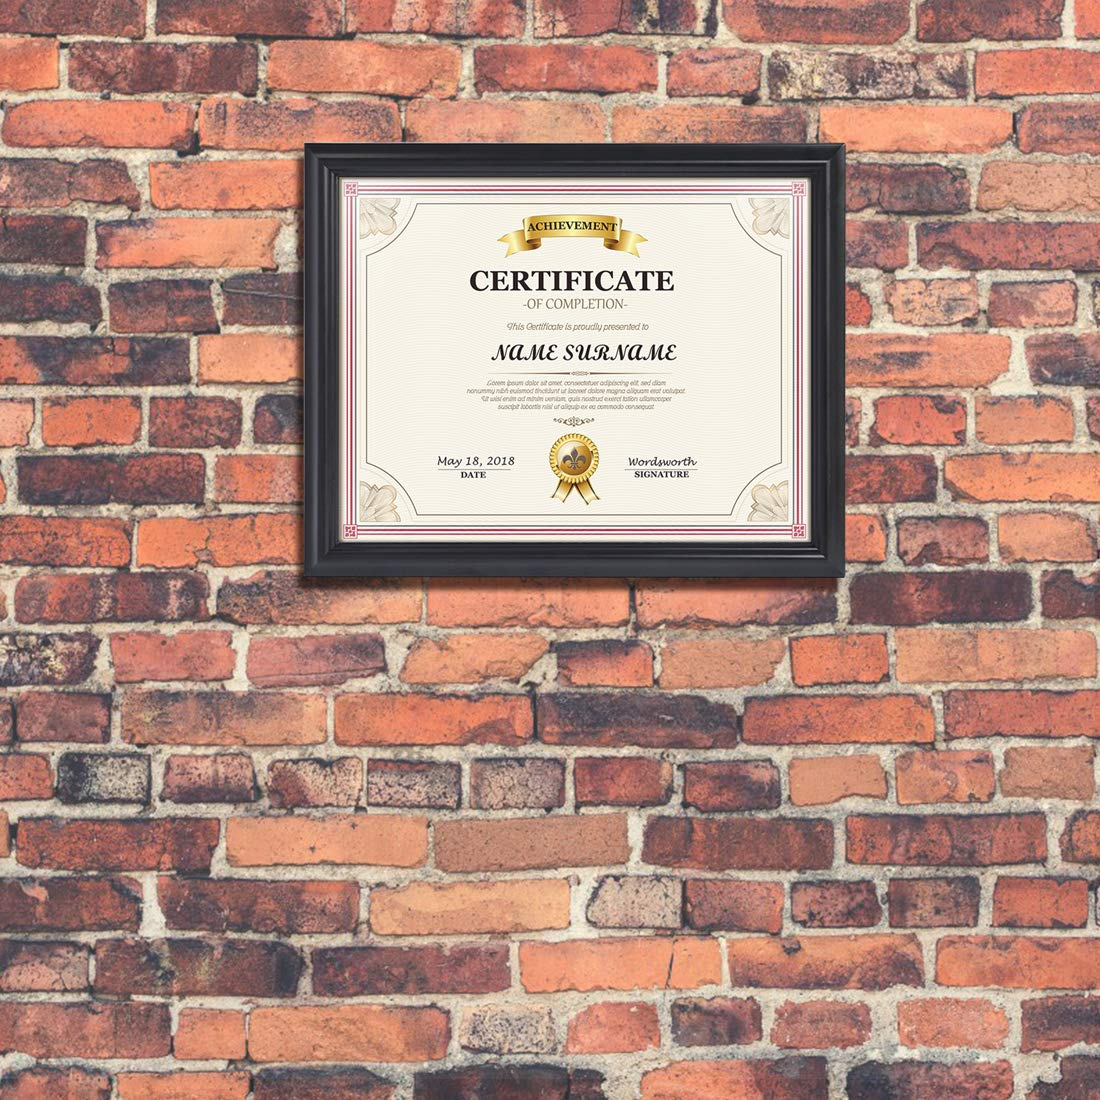 Artsay 8.5x11 Document Certificate Diploma Frame Black Picture Frames 8.5 x 11, Wall and Tabletop Display, 4 Pack by Artsay (Image #8)